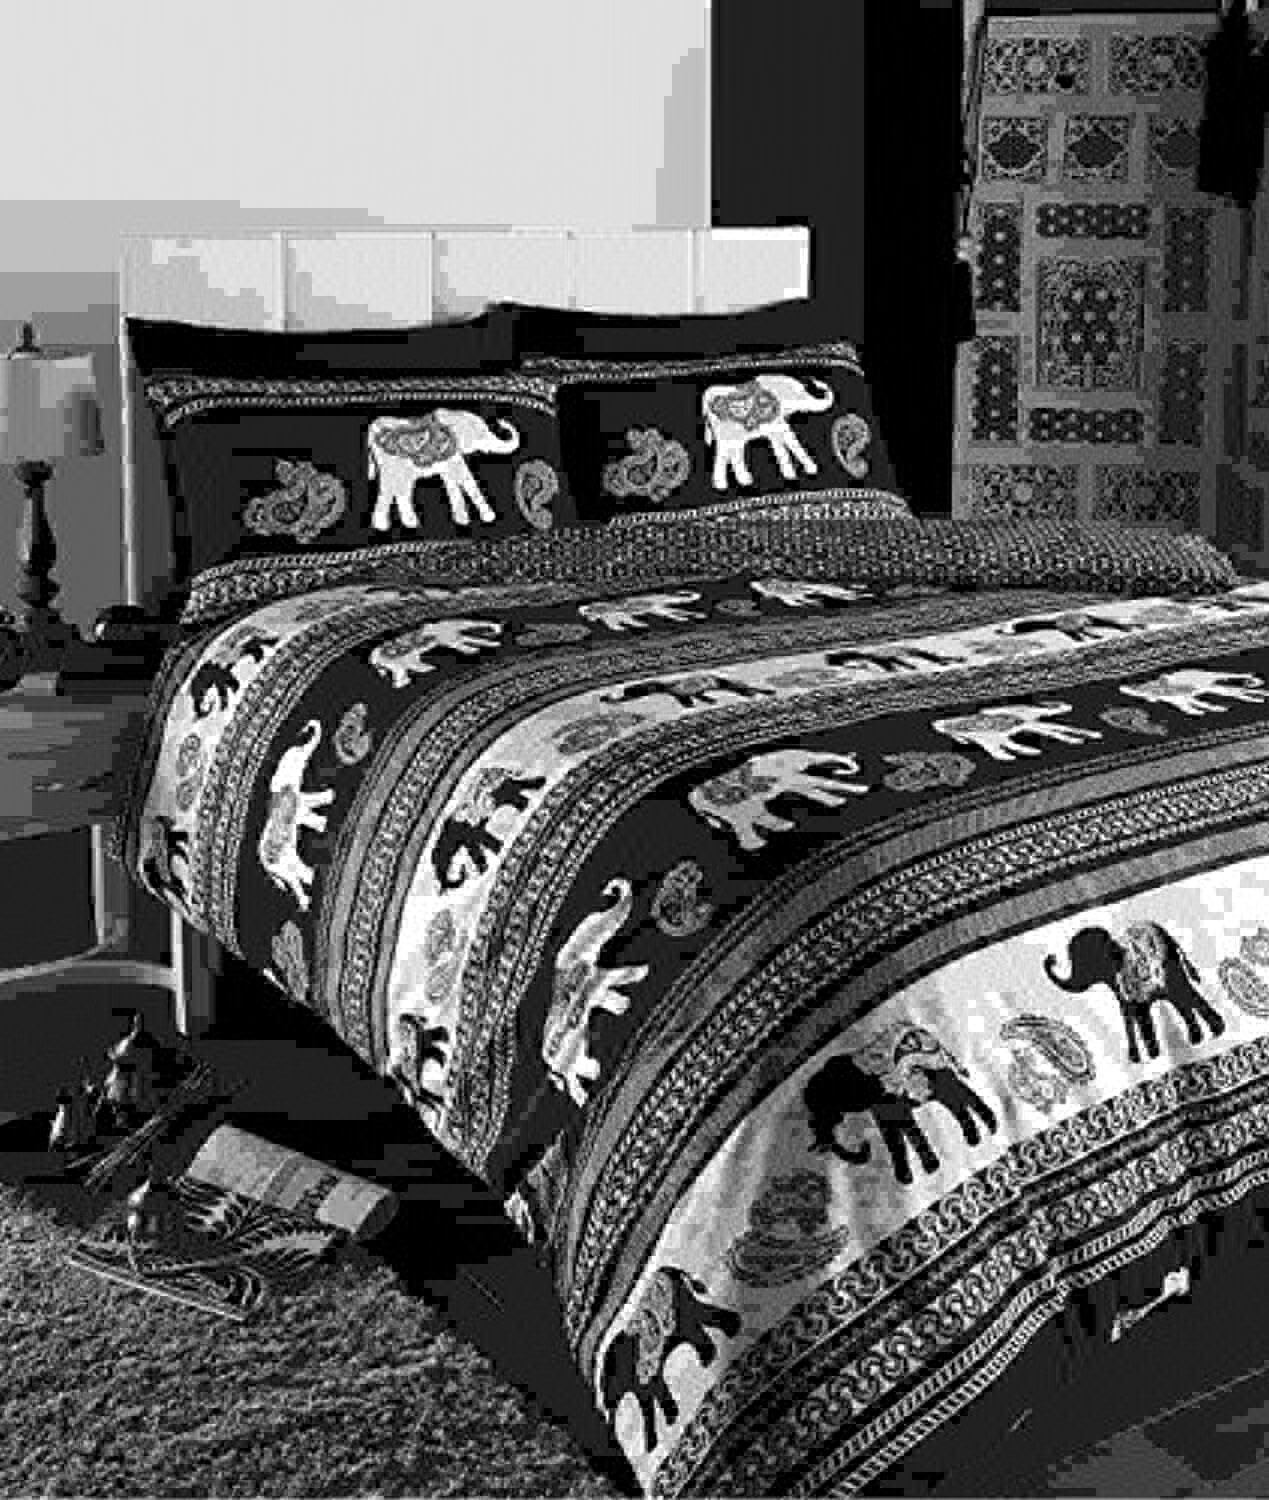 marca en liquidación de venta EMPIRE EMPIRE EMPIRE INDIAN ELEPHANT ANIMAL DOUBLE BED DUVET QUILT COVER BEDDING SET negro NEW by Century Mills  tienda en linea